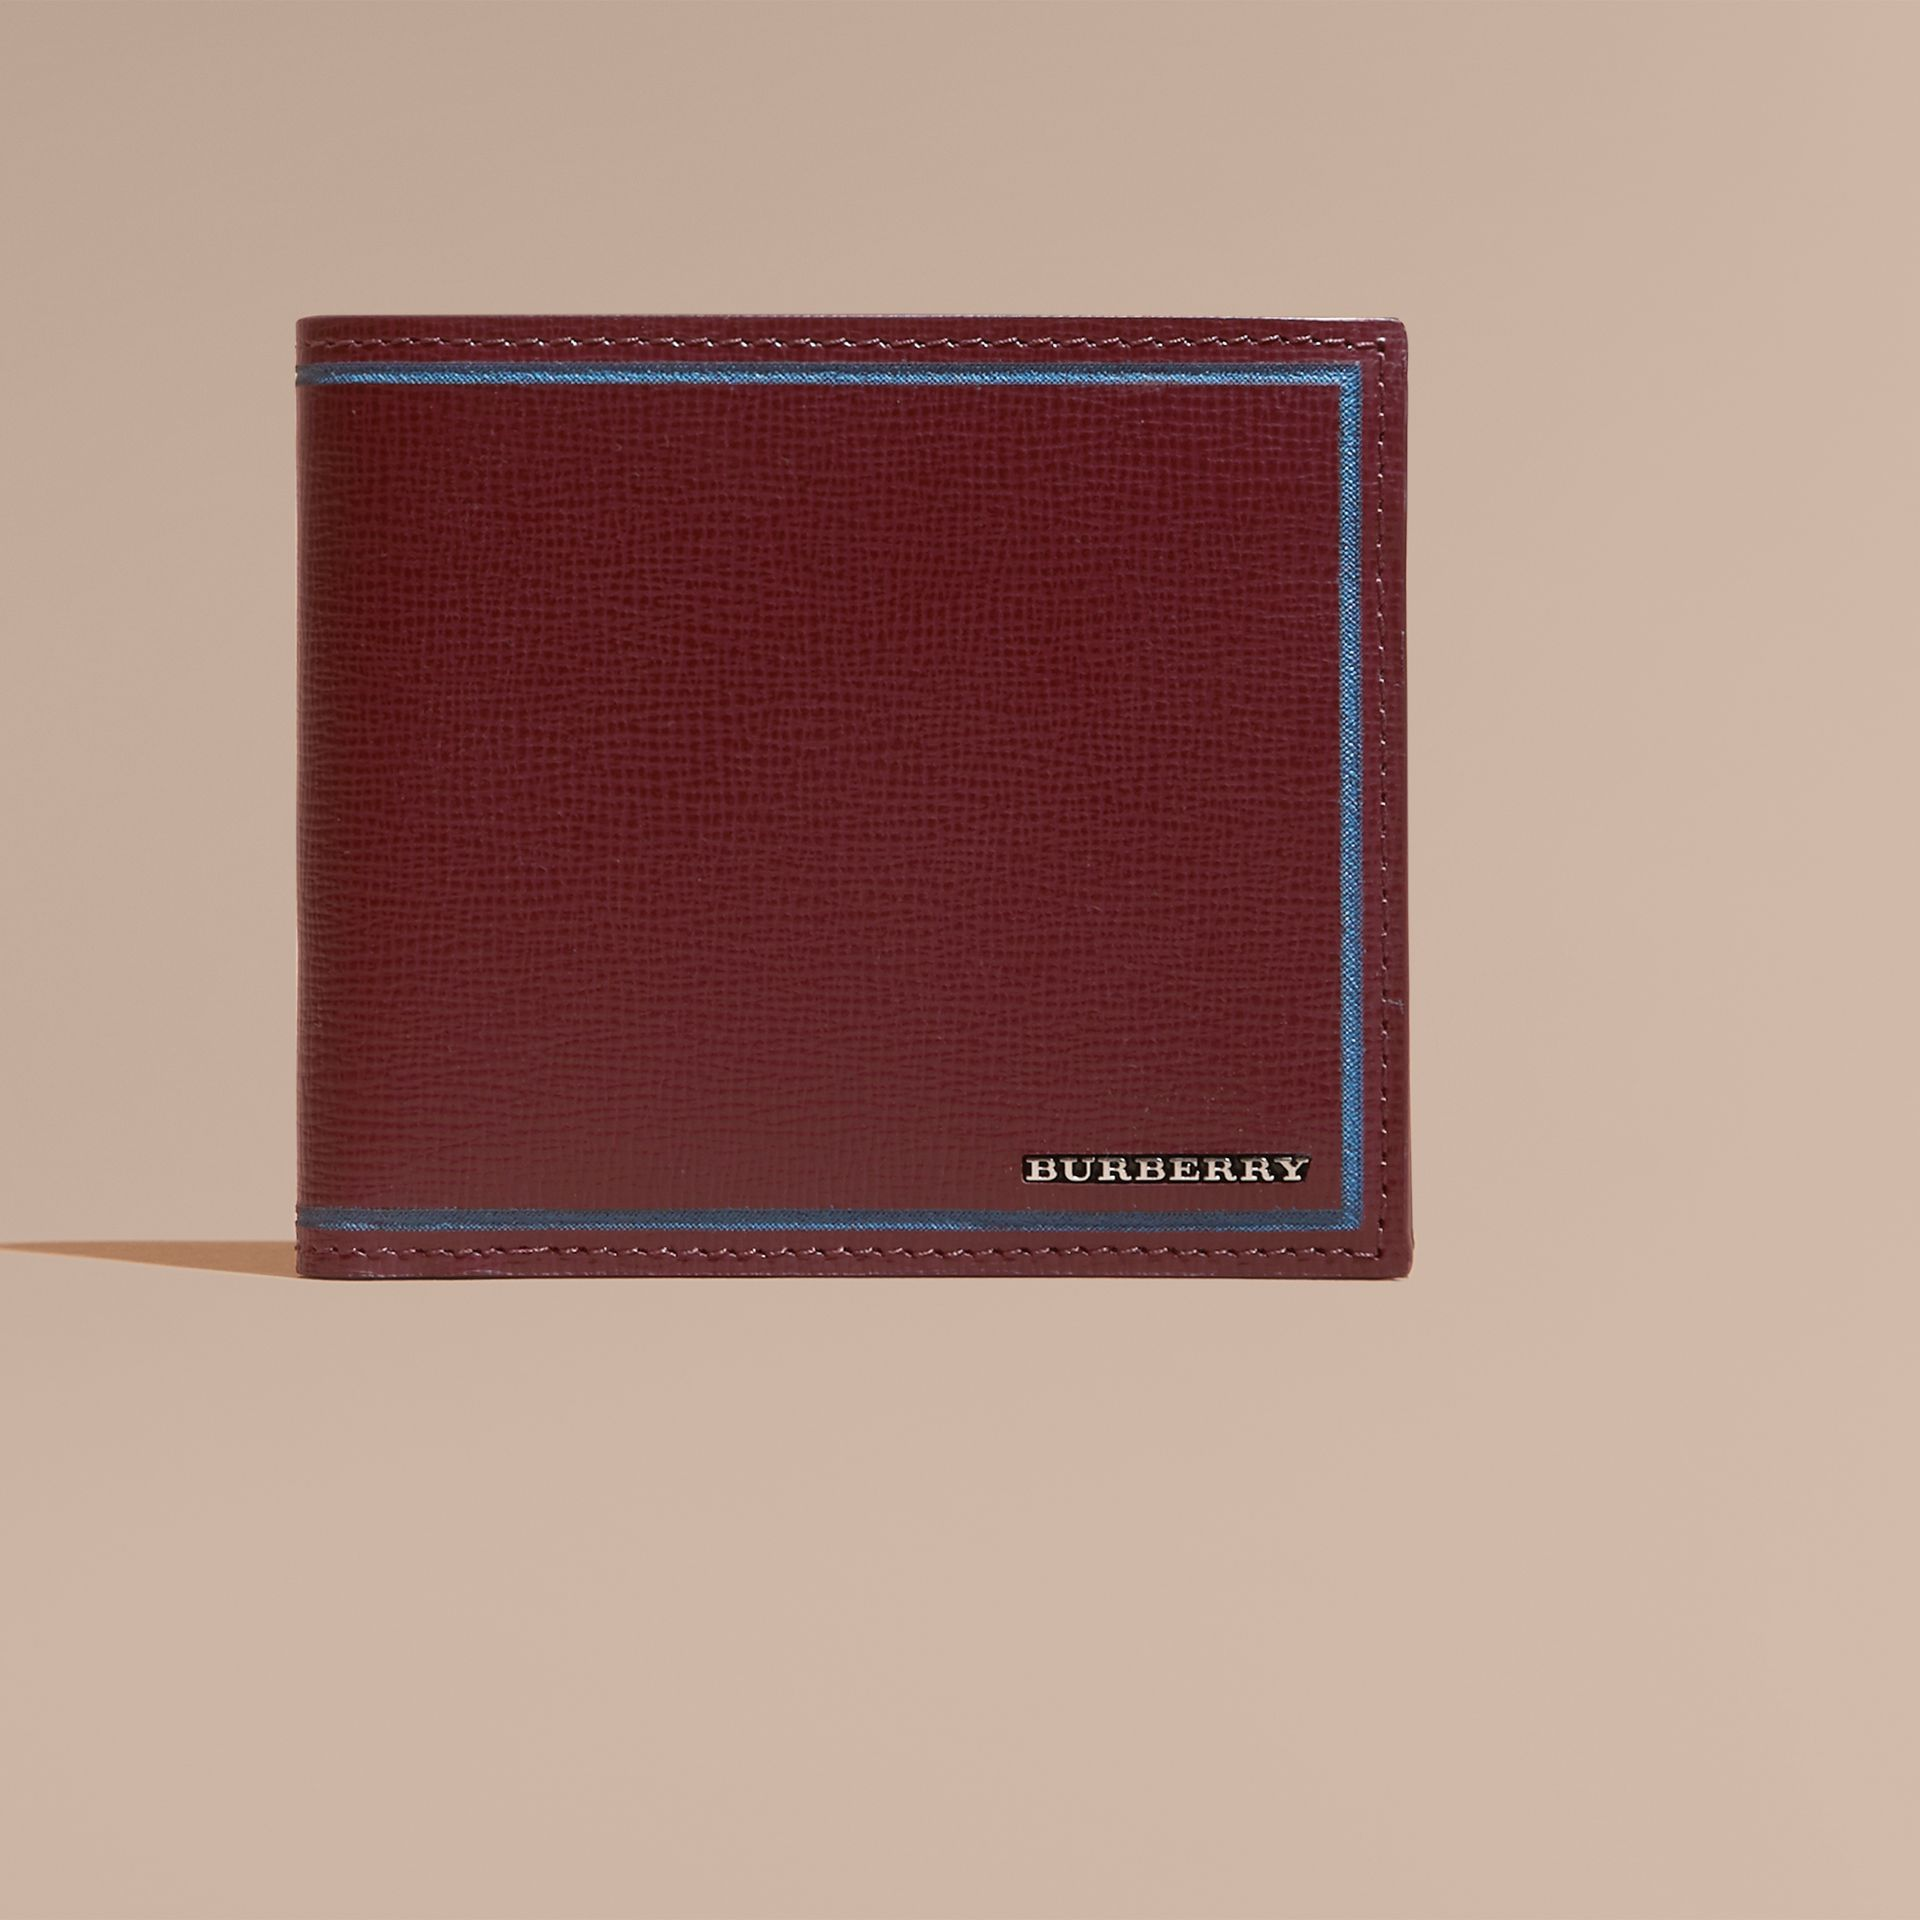 Border Detail London Leather Folding Wallet Burgundy Red - gallery image 3